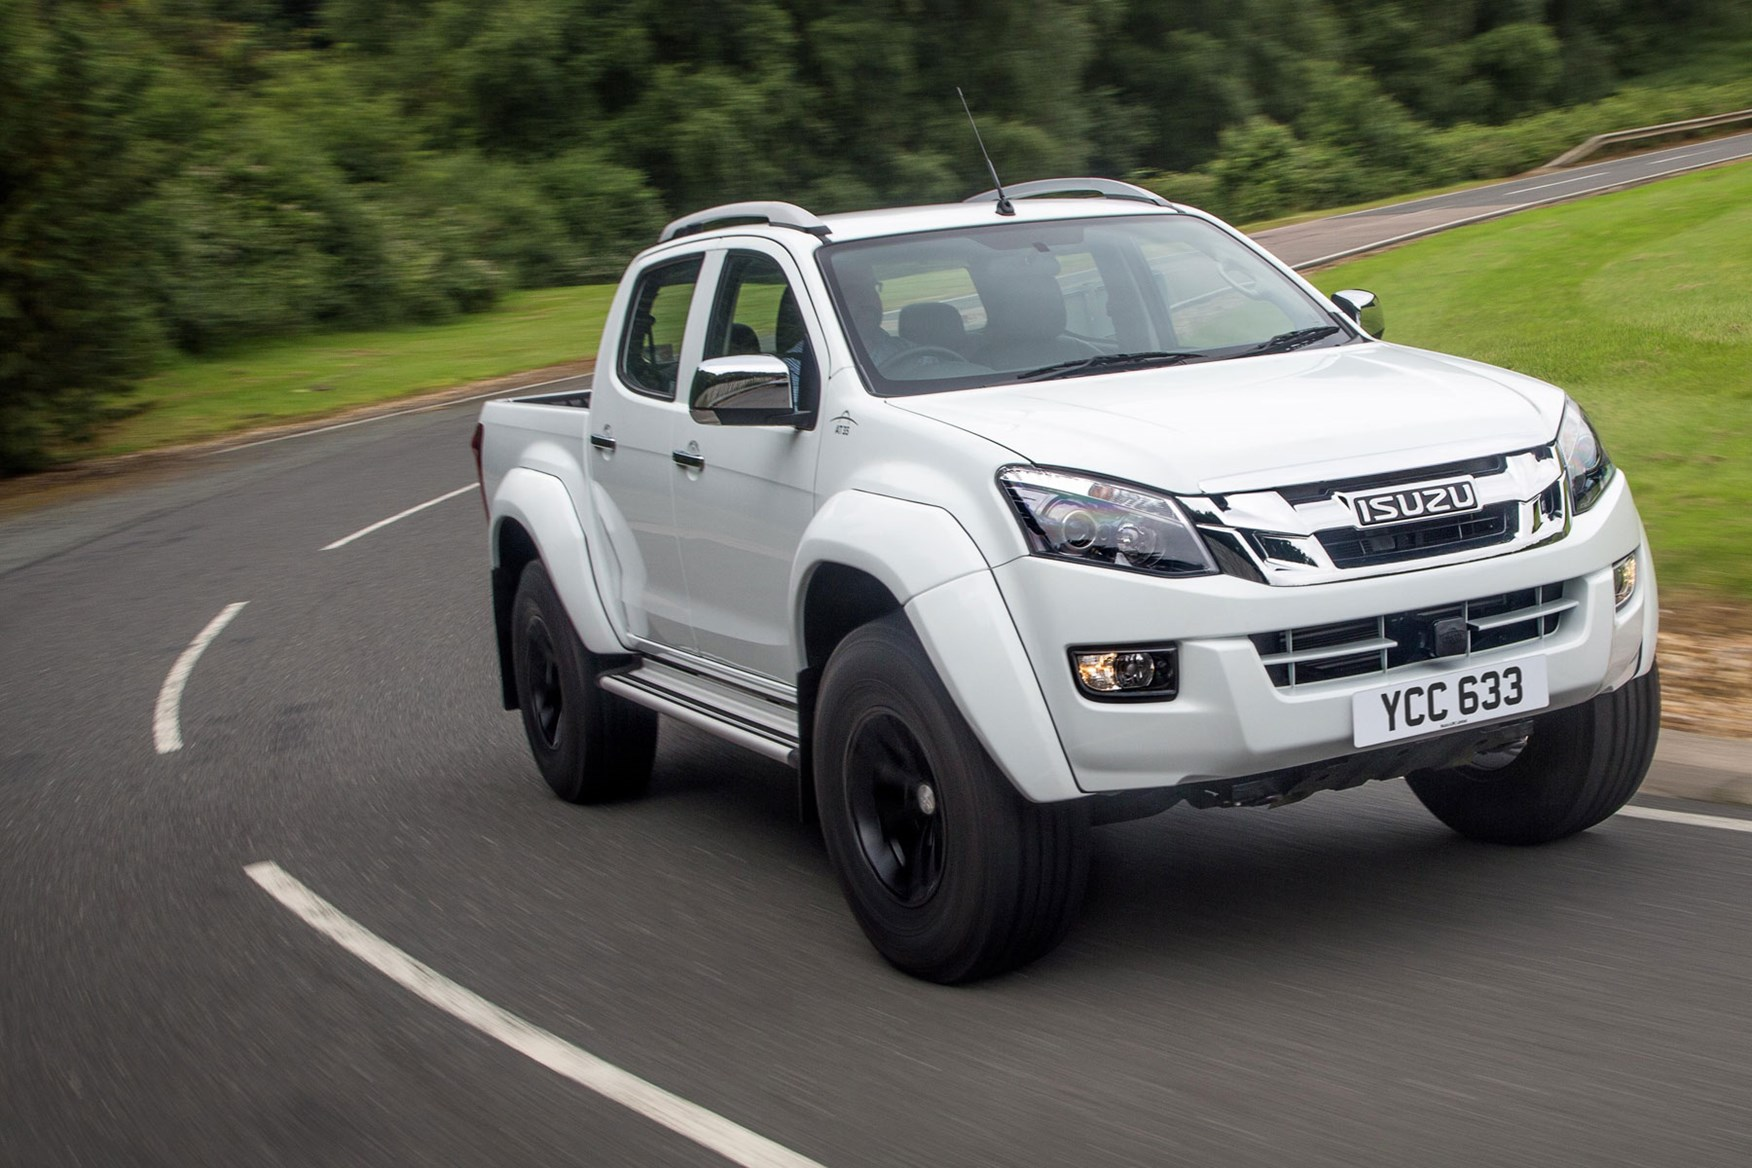 Isuzu D-Max AT35 2.5 review - front view, driving on road, white